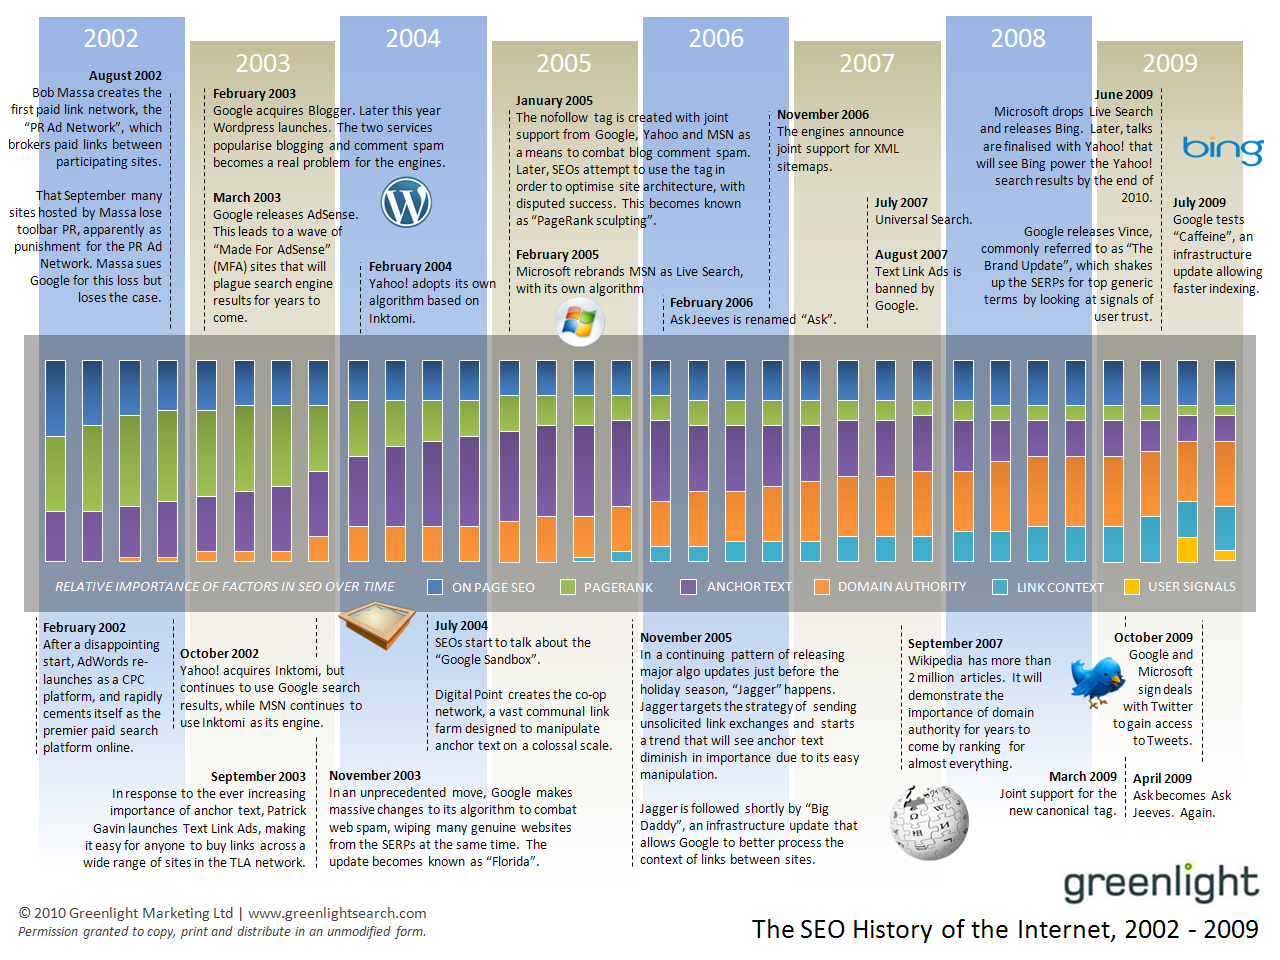 Greenlight history of SEO 2002-2009